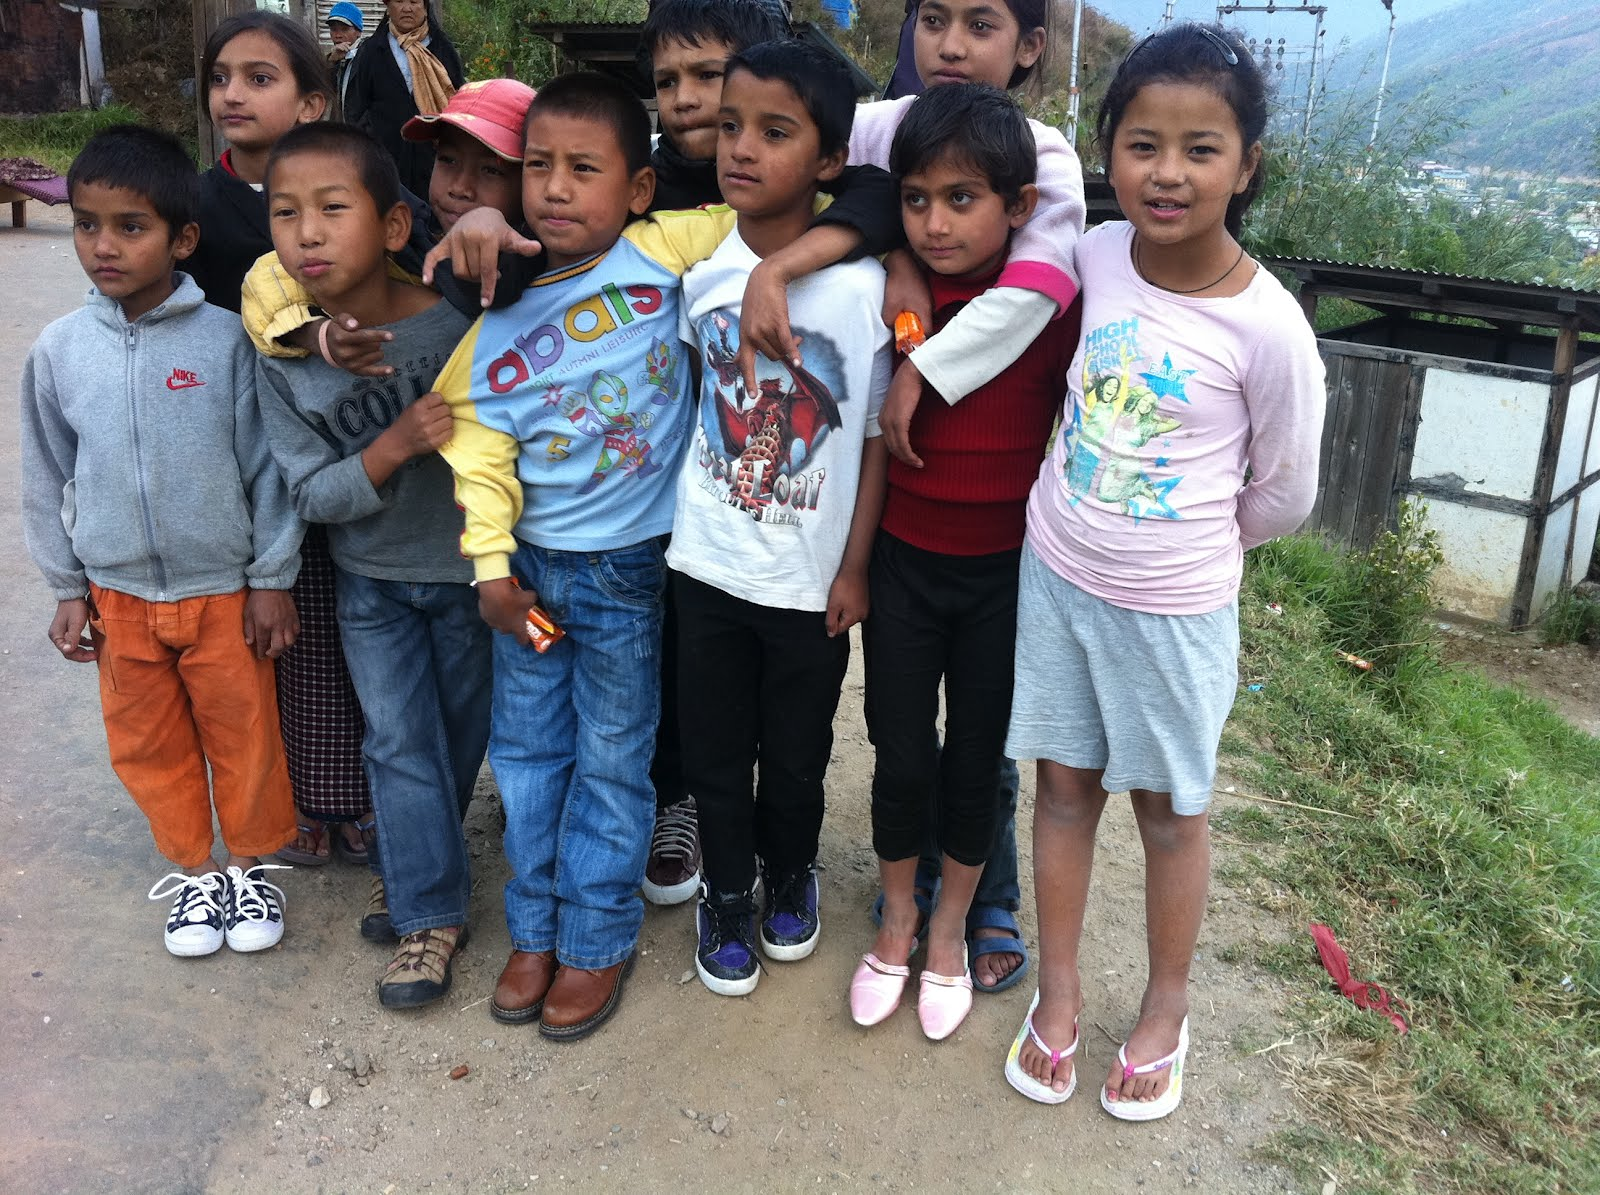 Happy kids with recycled shoes. Image by Help Shoe Bhutan. Used with permission.